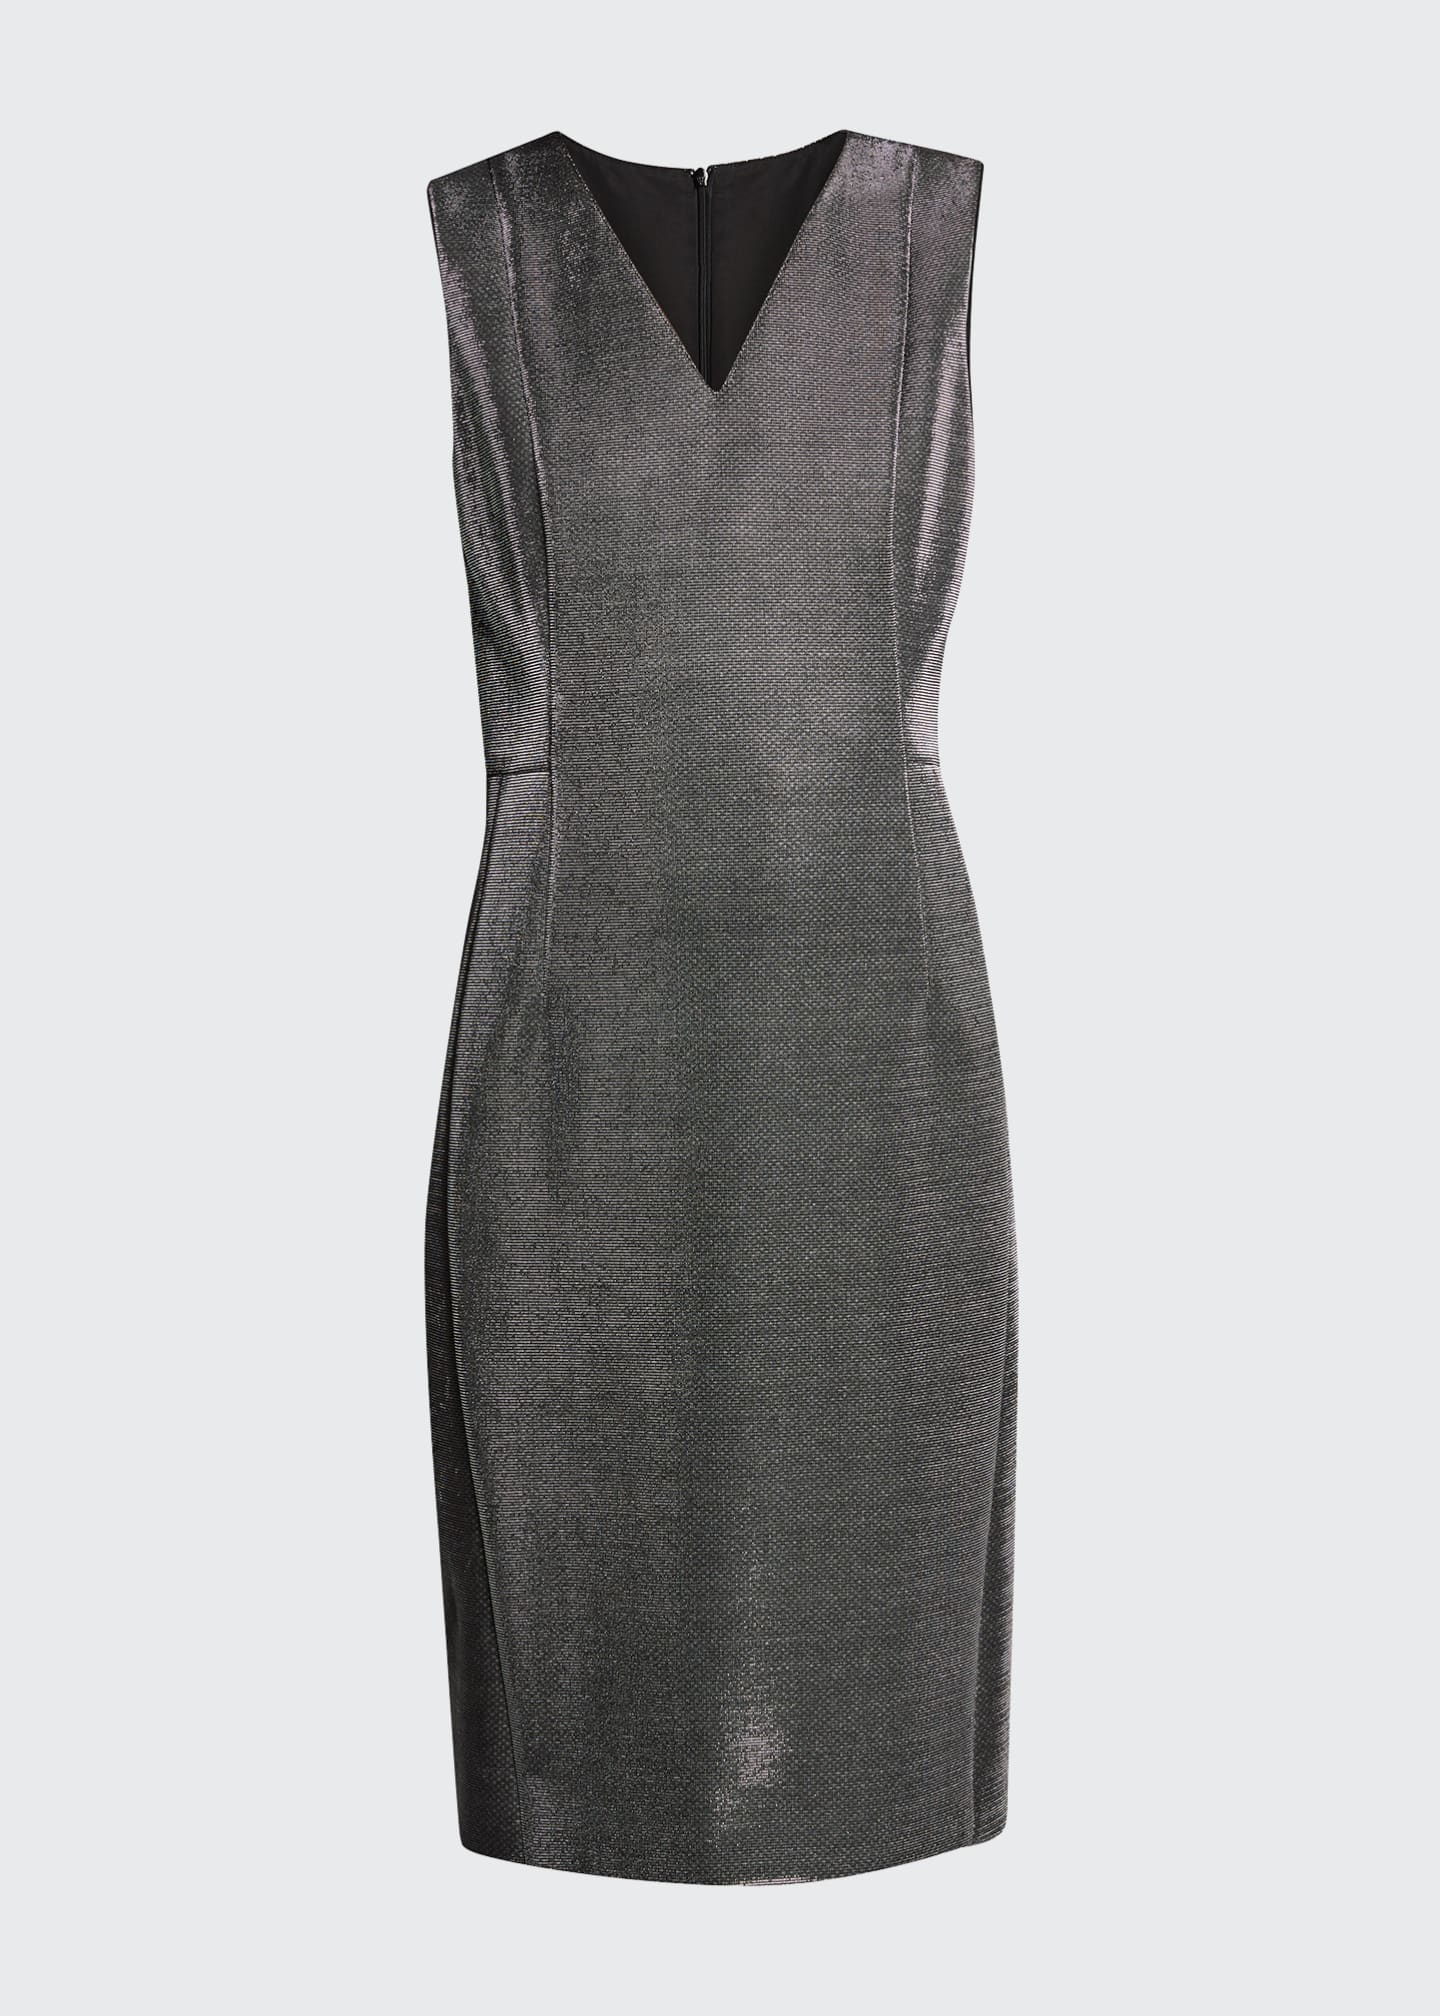 Image 5 of 5: Sleeveless V-Neck Metallic Cocktail Dress